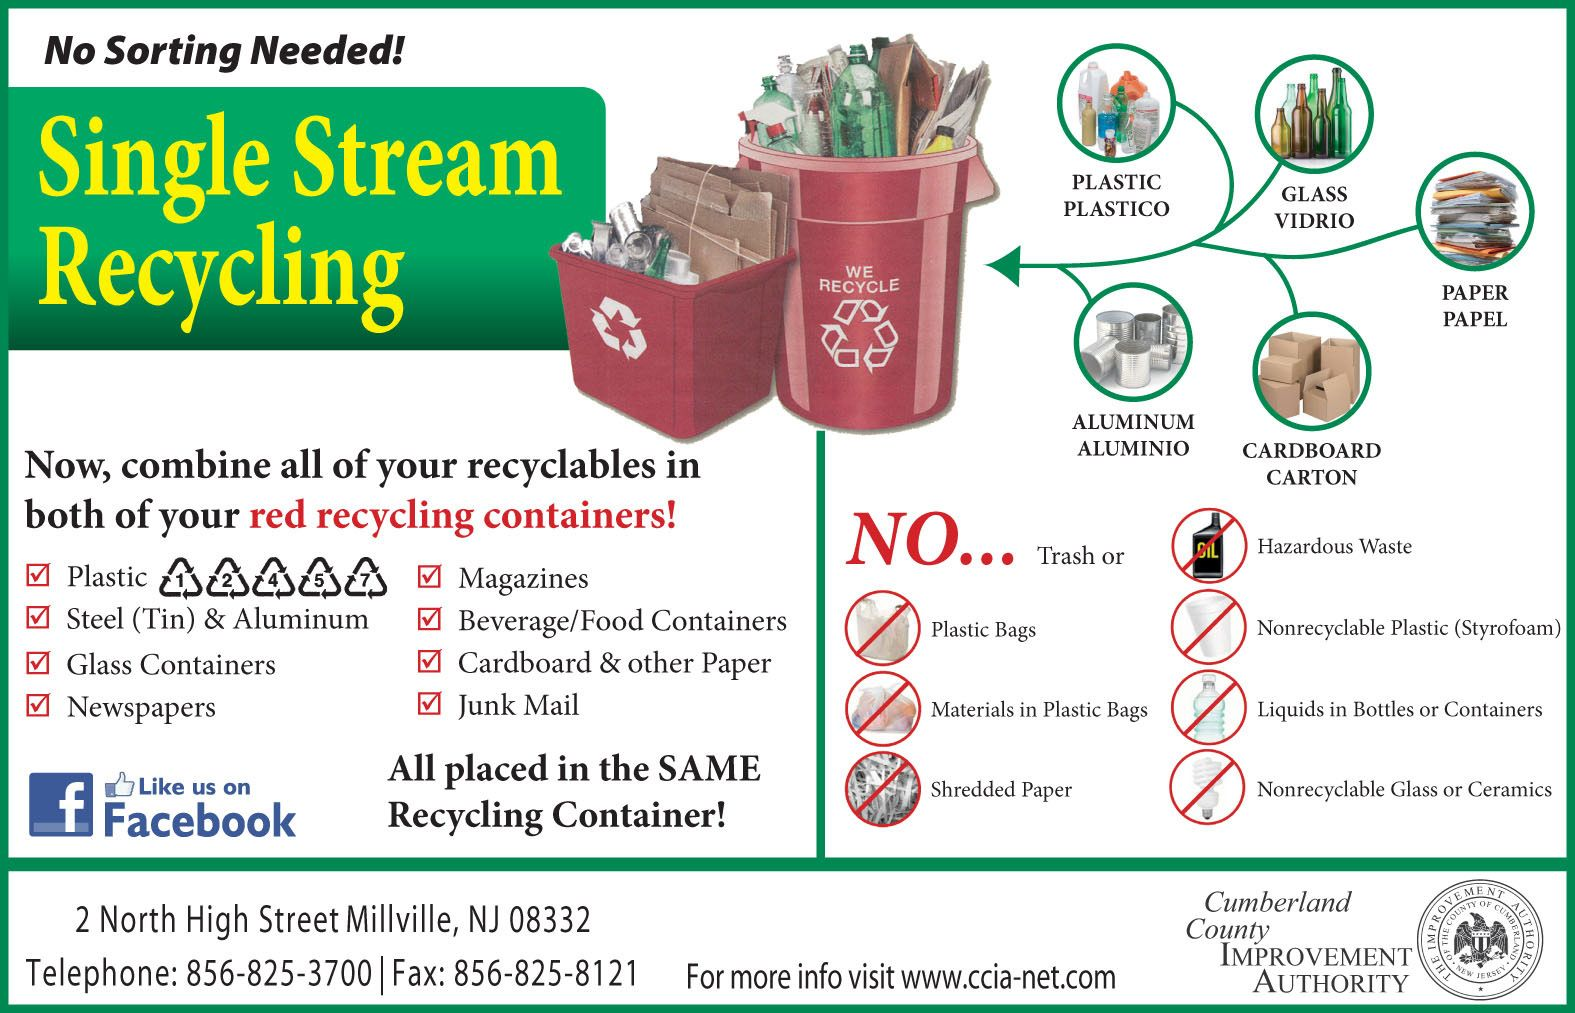 Cumberland County Improvement Authority Single Stream Recycling Recycling Containers Recycled Paper Cardboard Cartons